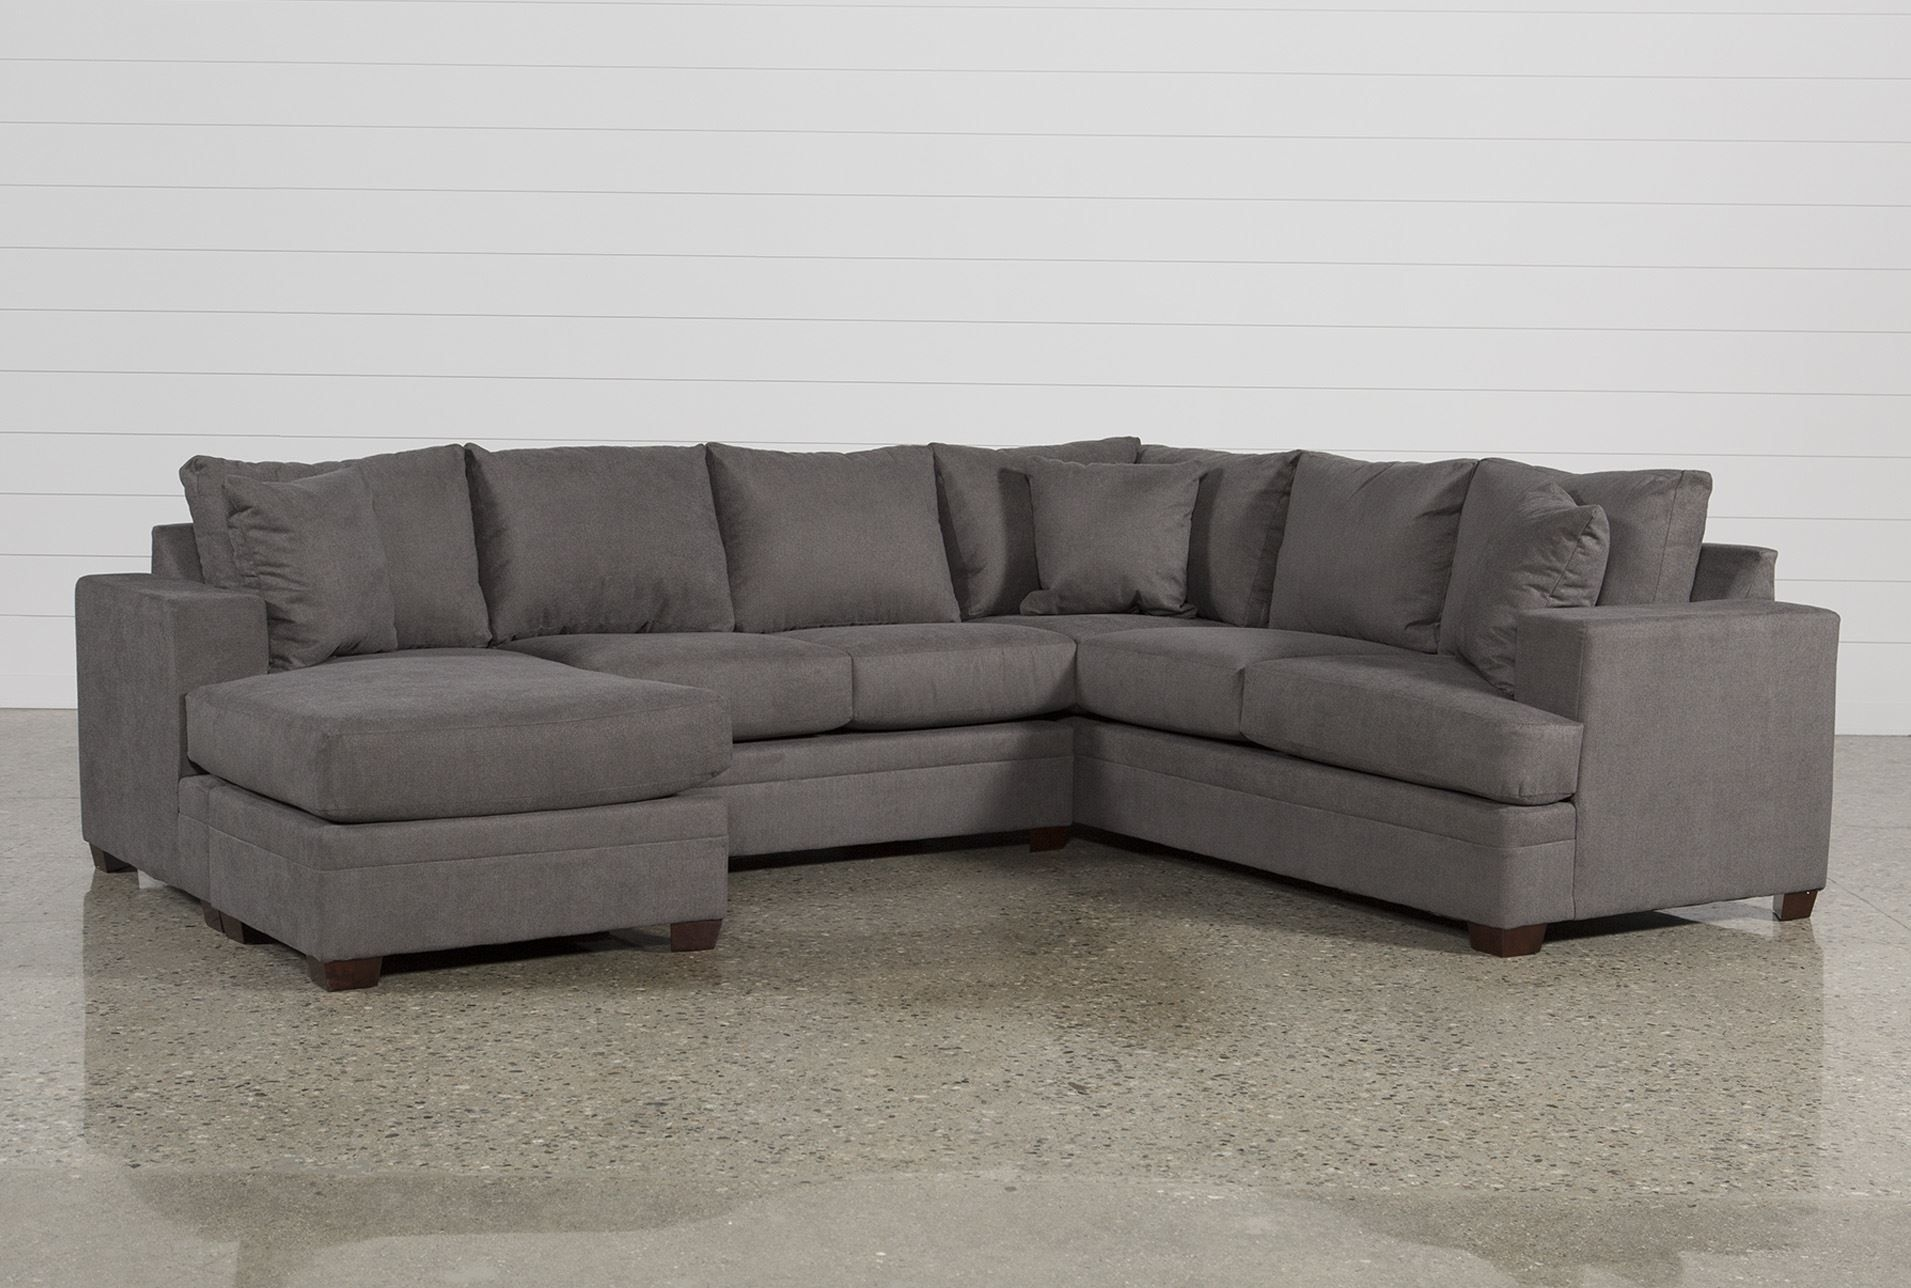 Kerri 2 Piece Sectional W/laf Chaise | Family Room | Pinterest With Regard To Aspen 2 Piece Sectionals With Laf Chaise (View 4 of 25)